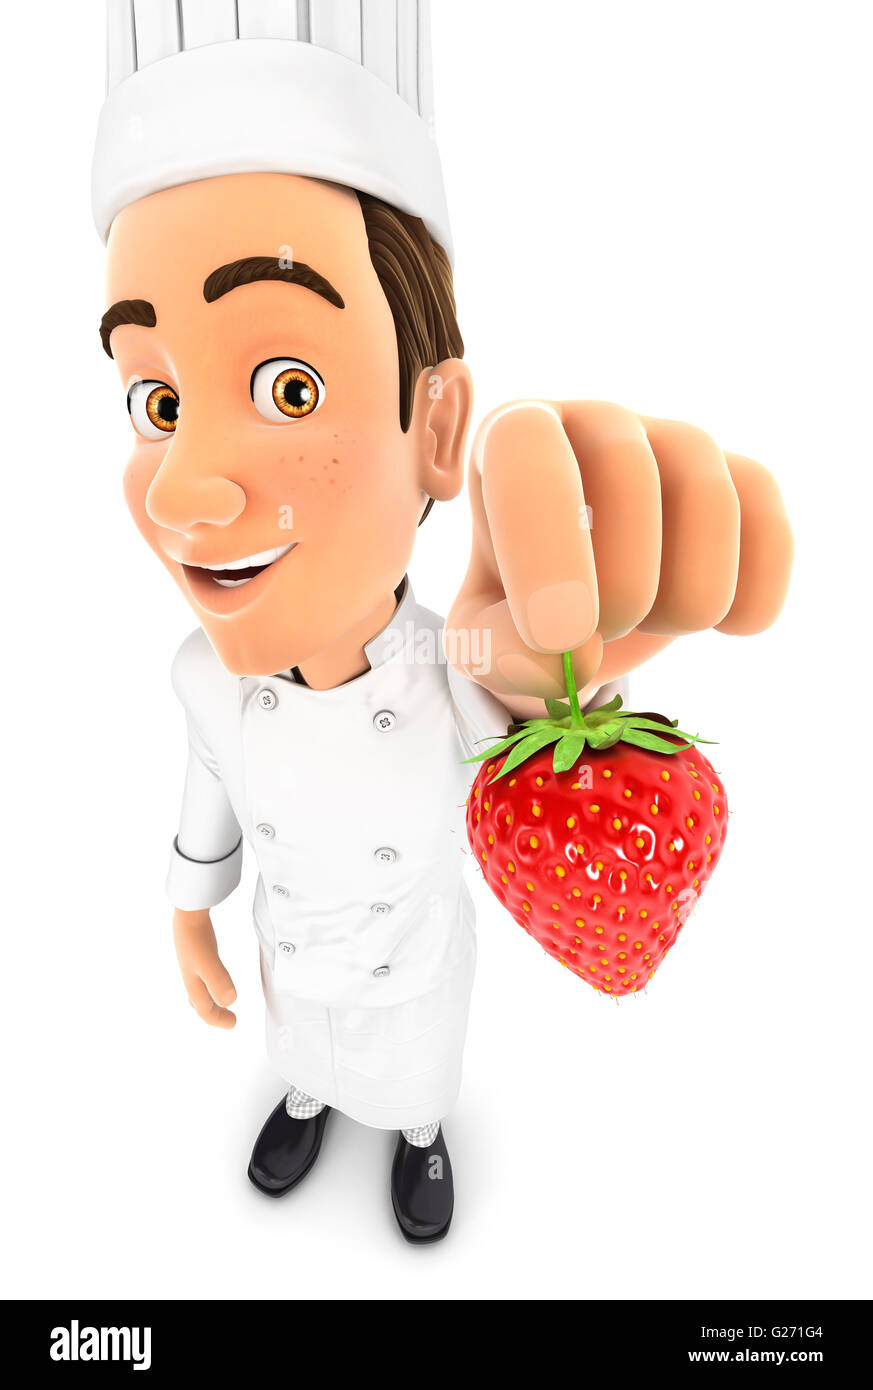 3d head chef holding a strawberry, illustration with isolated white background Stock Photo